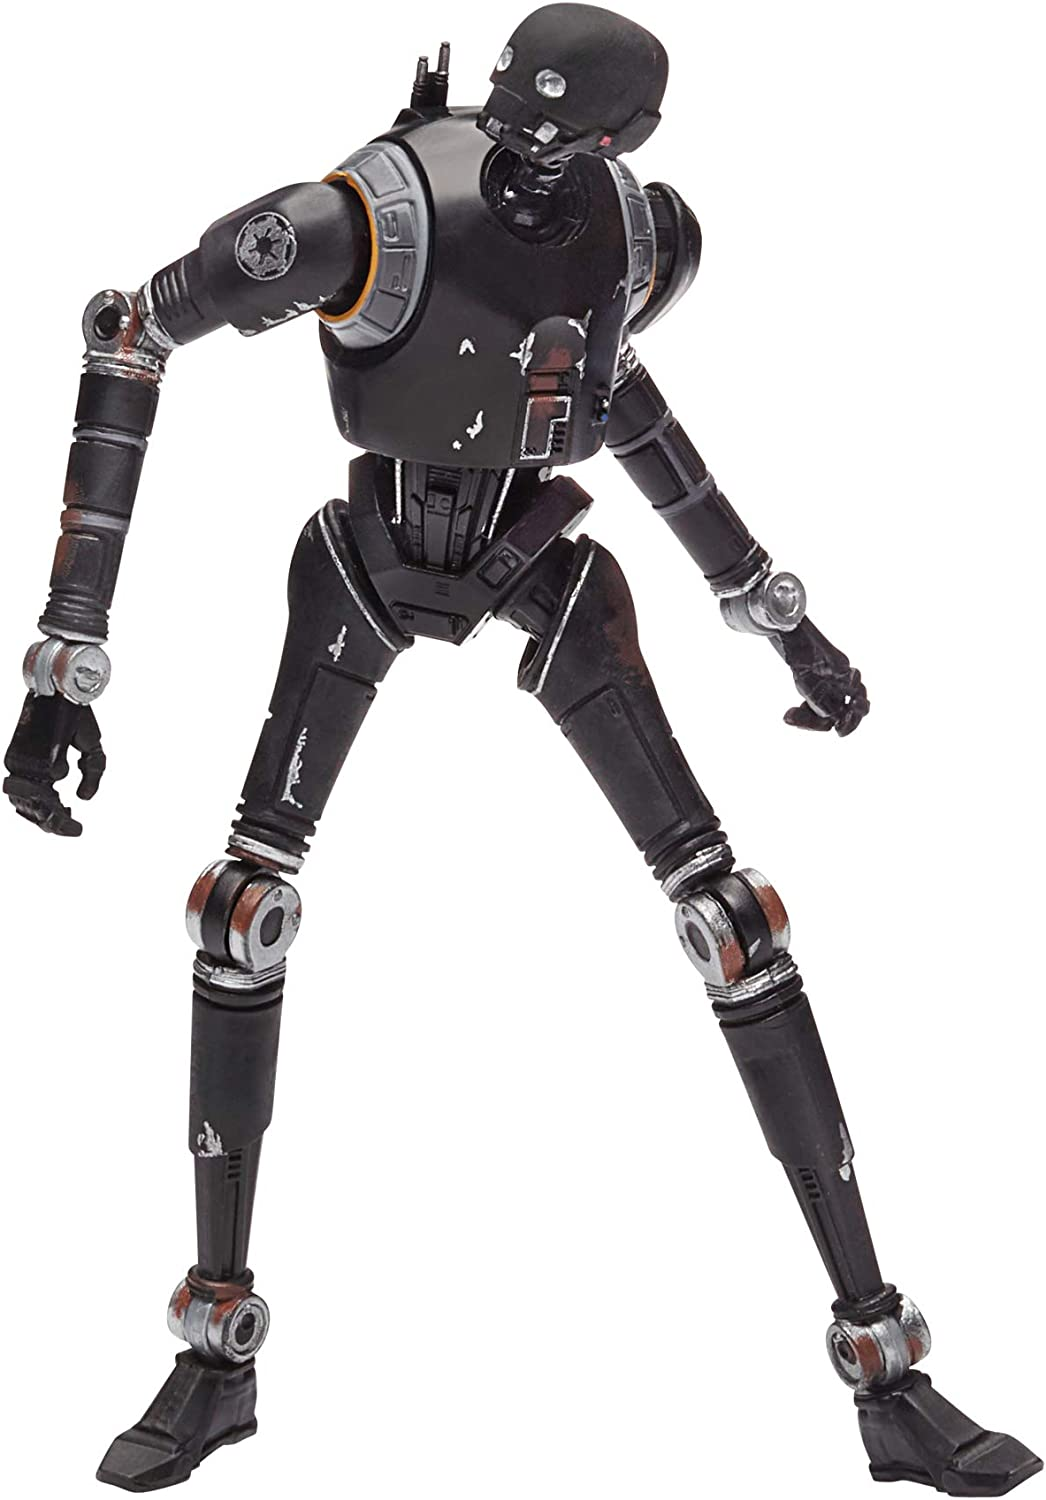 Star Wars The Vintage Collection K-2SO (Kay-Tuesso) Toy, 3.75-Inch-Scale Rogue One: A Story Action Figure, Kids Ages 4 and Up